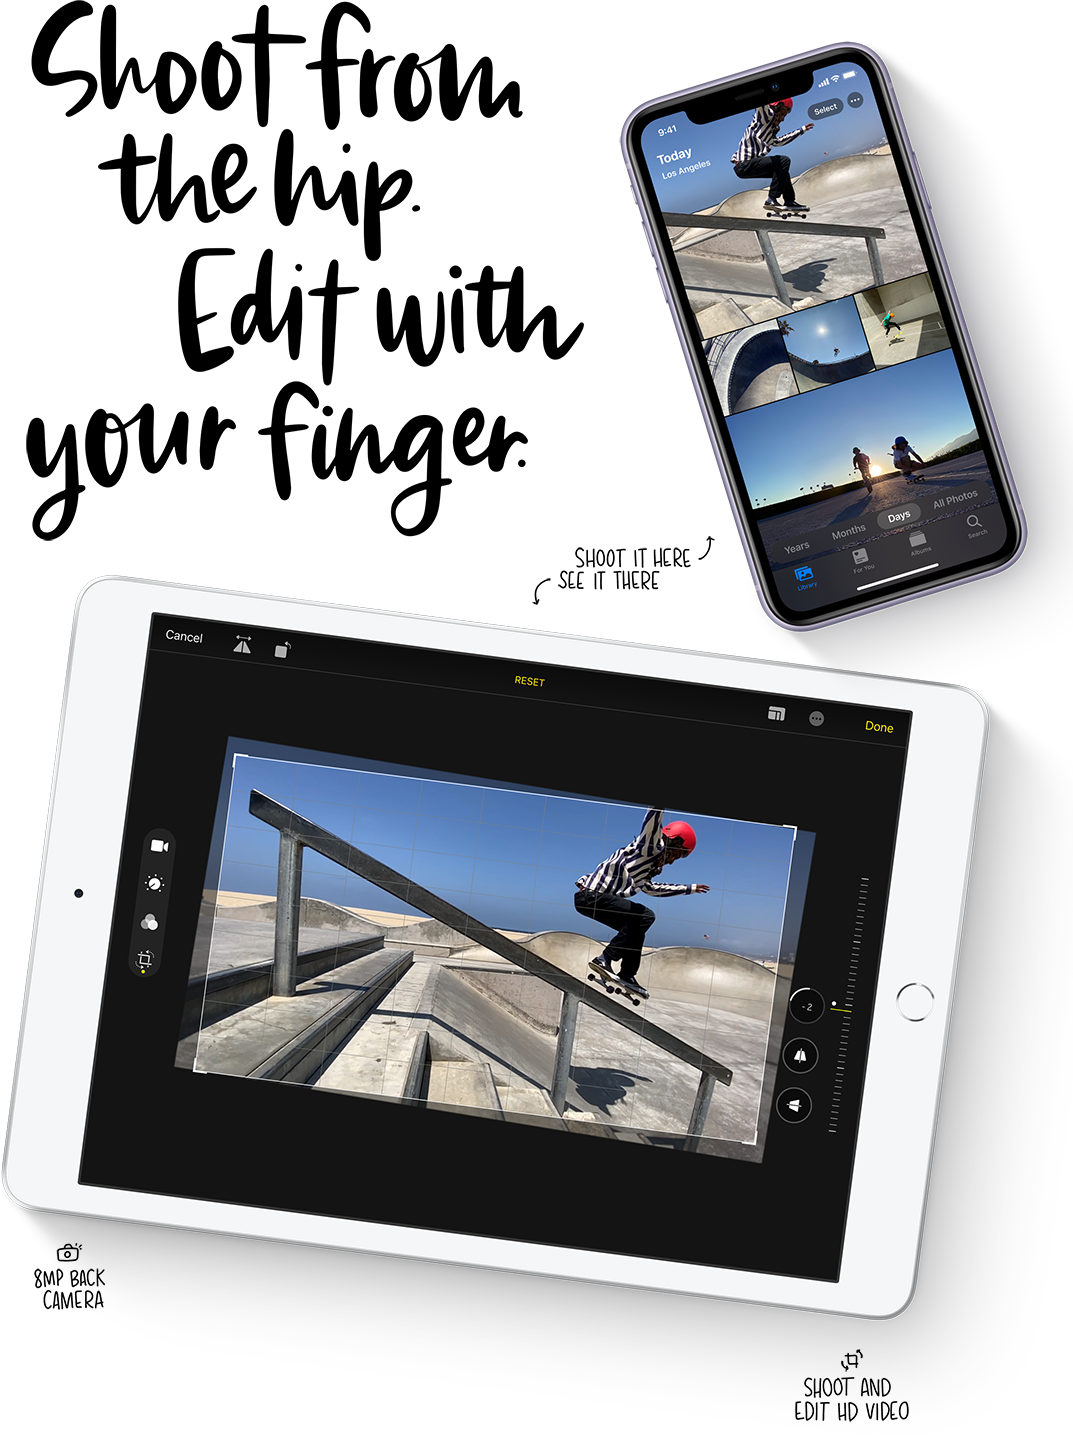 iPad 8's screen makes photo editing and enhancement even easier.